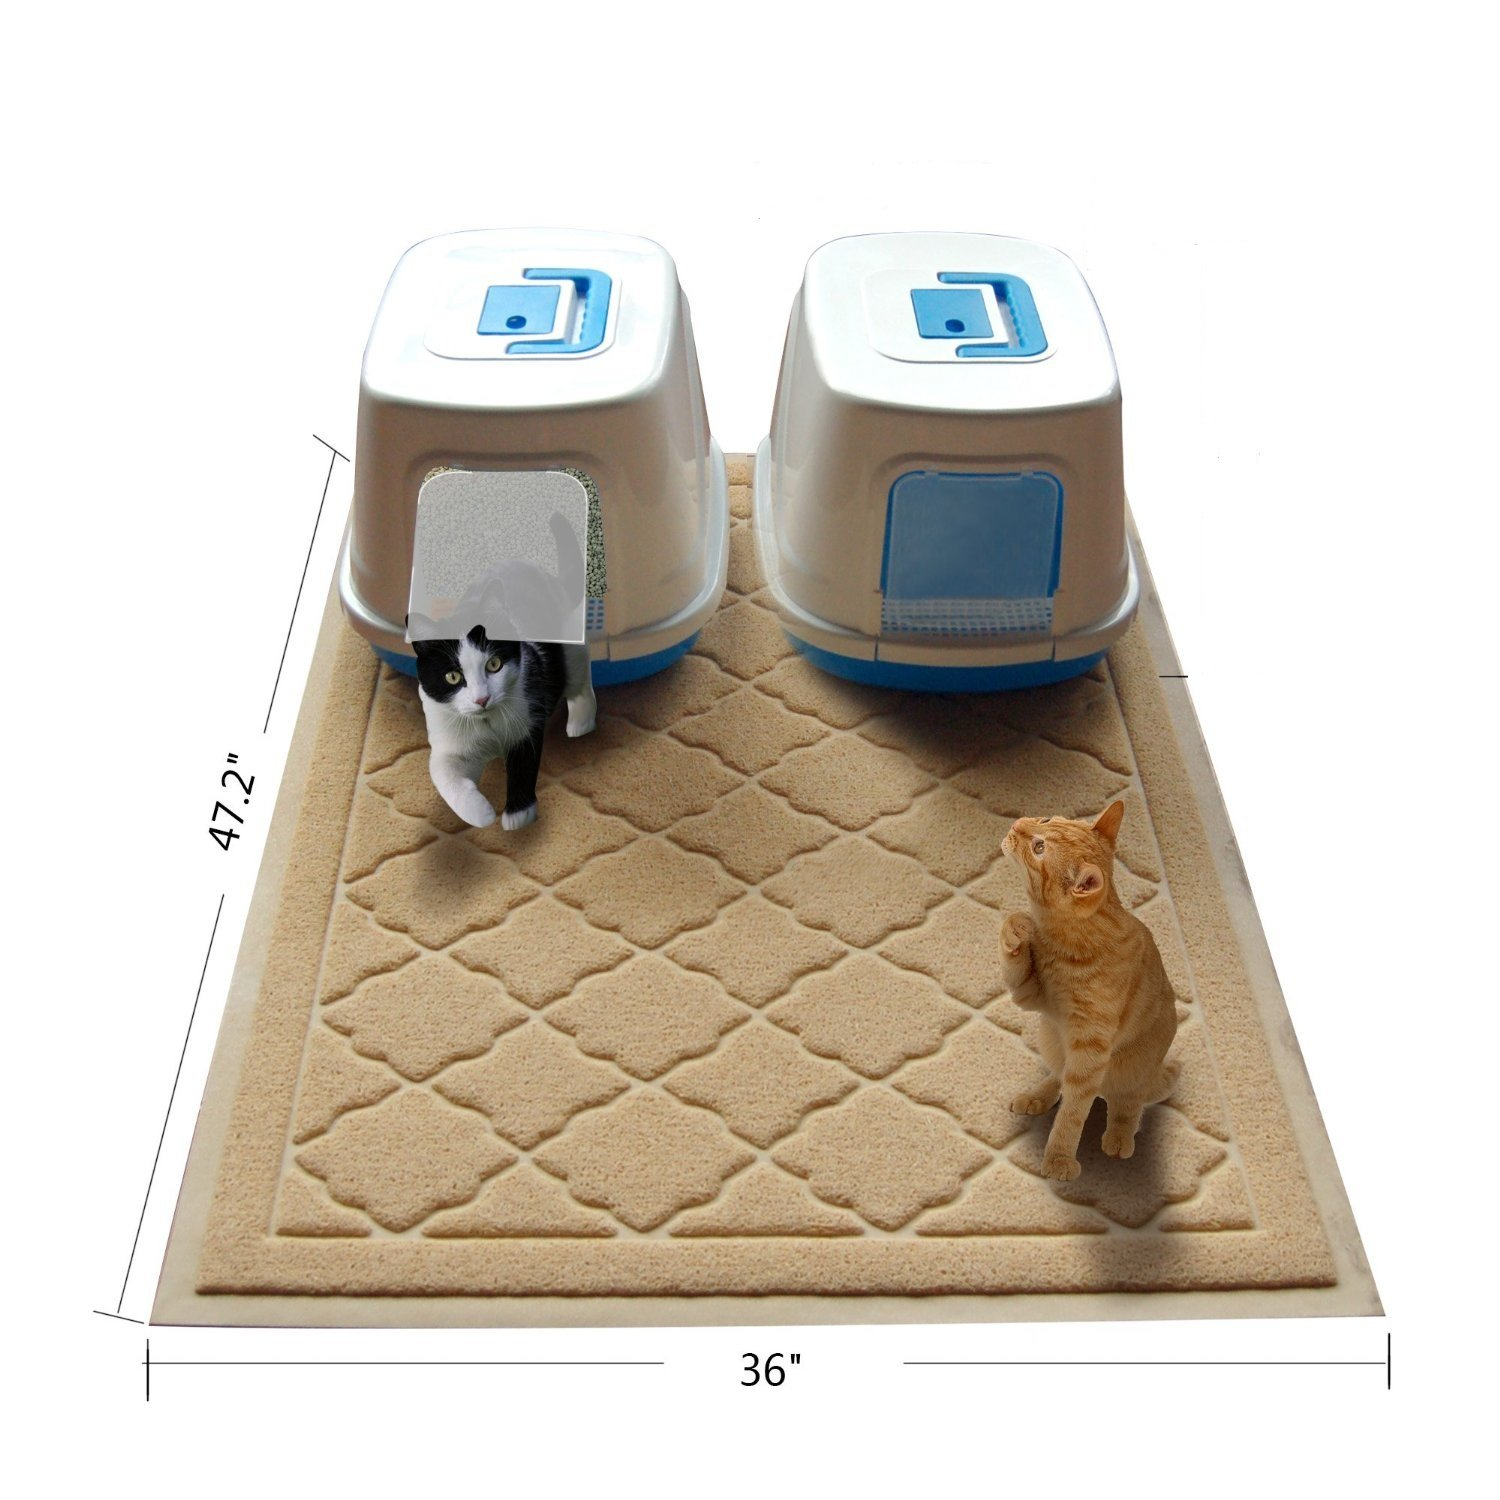 Non Toxic Jumbo Size Cat Litter Mat - (47 x 36 in) - JUMBO Scatter Control Kitty Litter Mats for Cats Tracking Litter Out of Their Box - Extra Large Soft to Paws